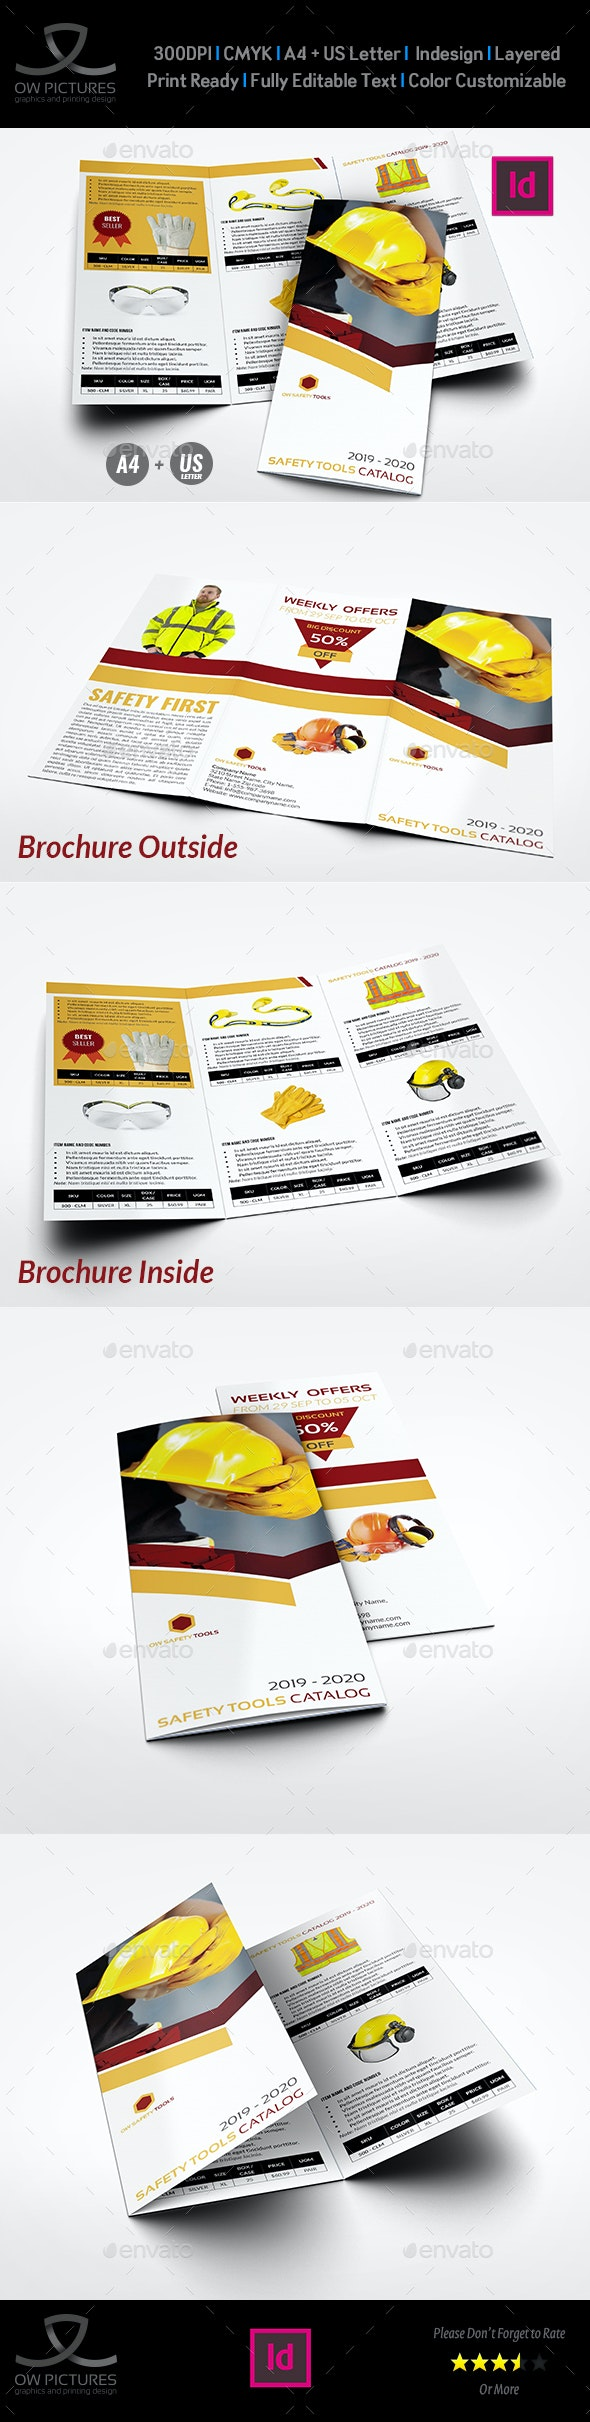 Safety Tools Catalog Tri-Fold Brochure Template - Catalogs Brochures